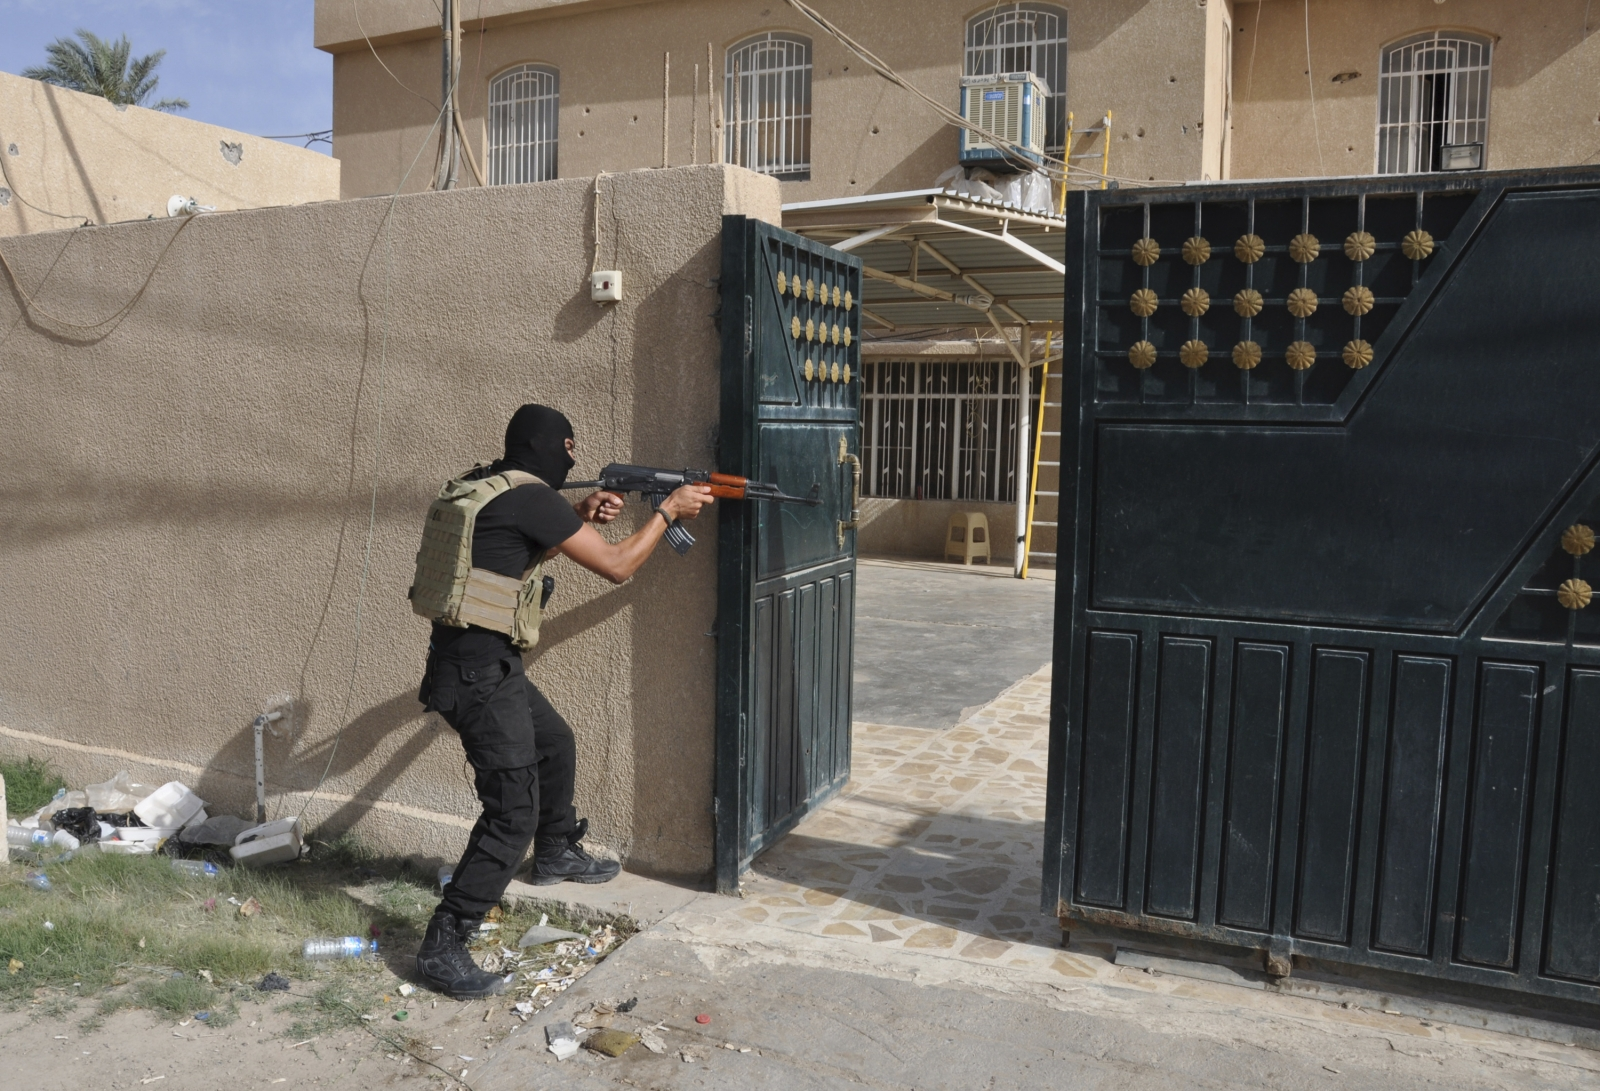 A member of the Iraqi security forces battles Isis militants in Ramadi, al Anbar province (Reuters)